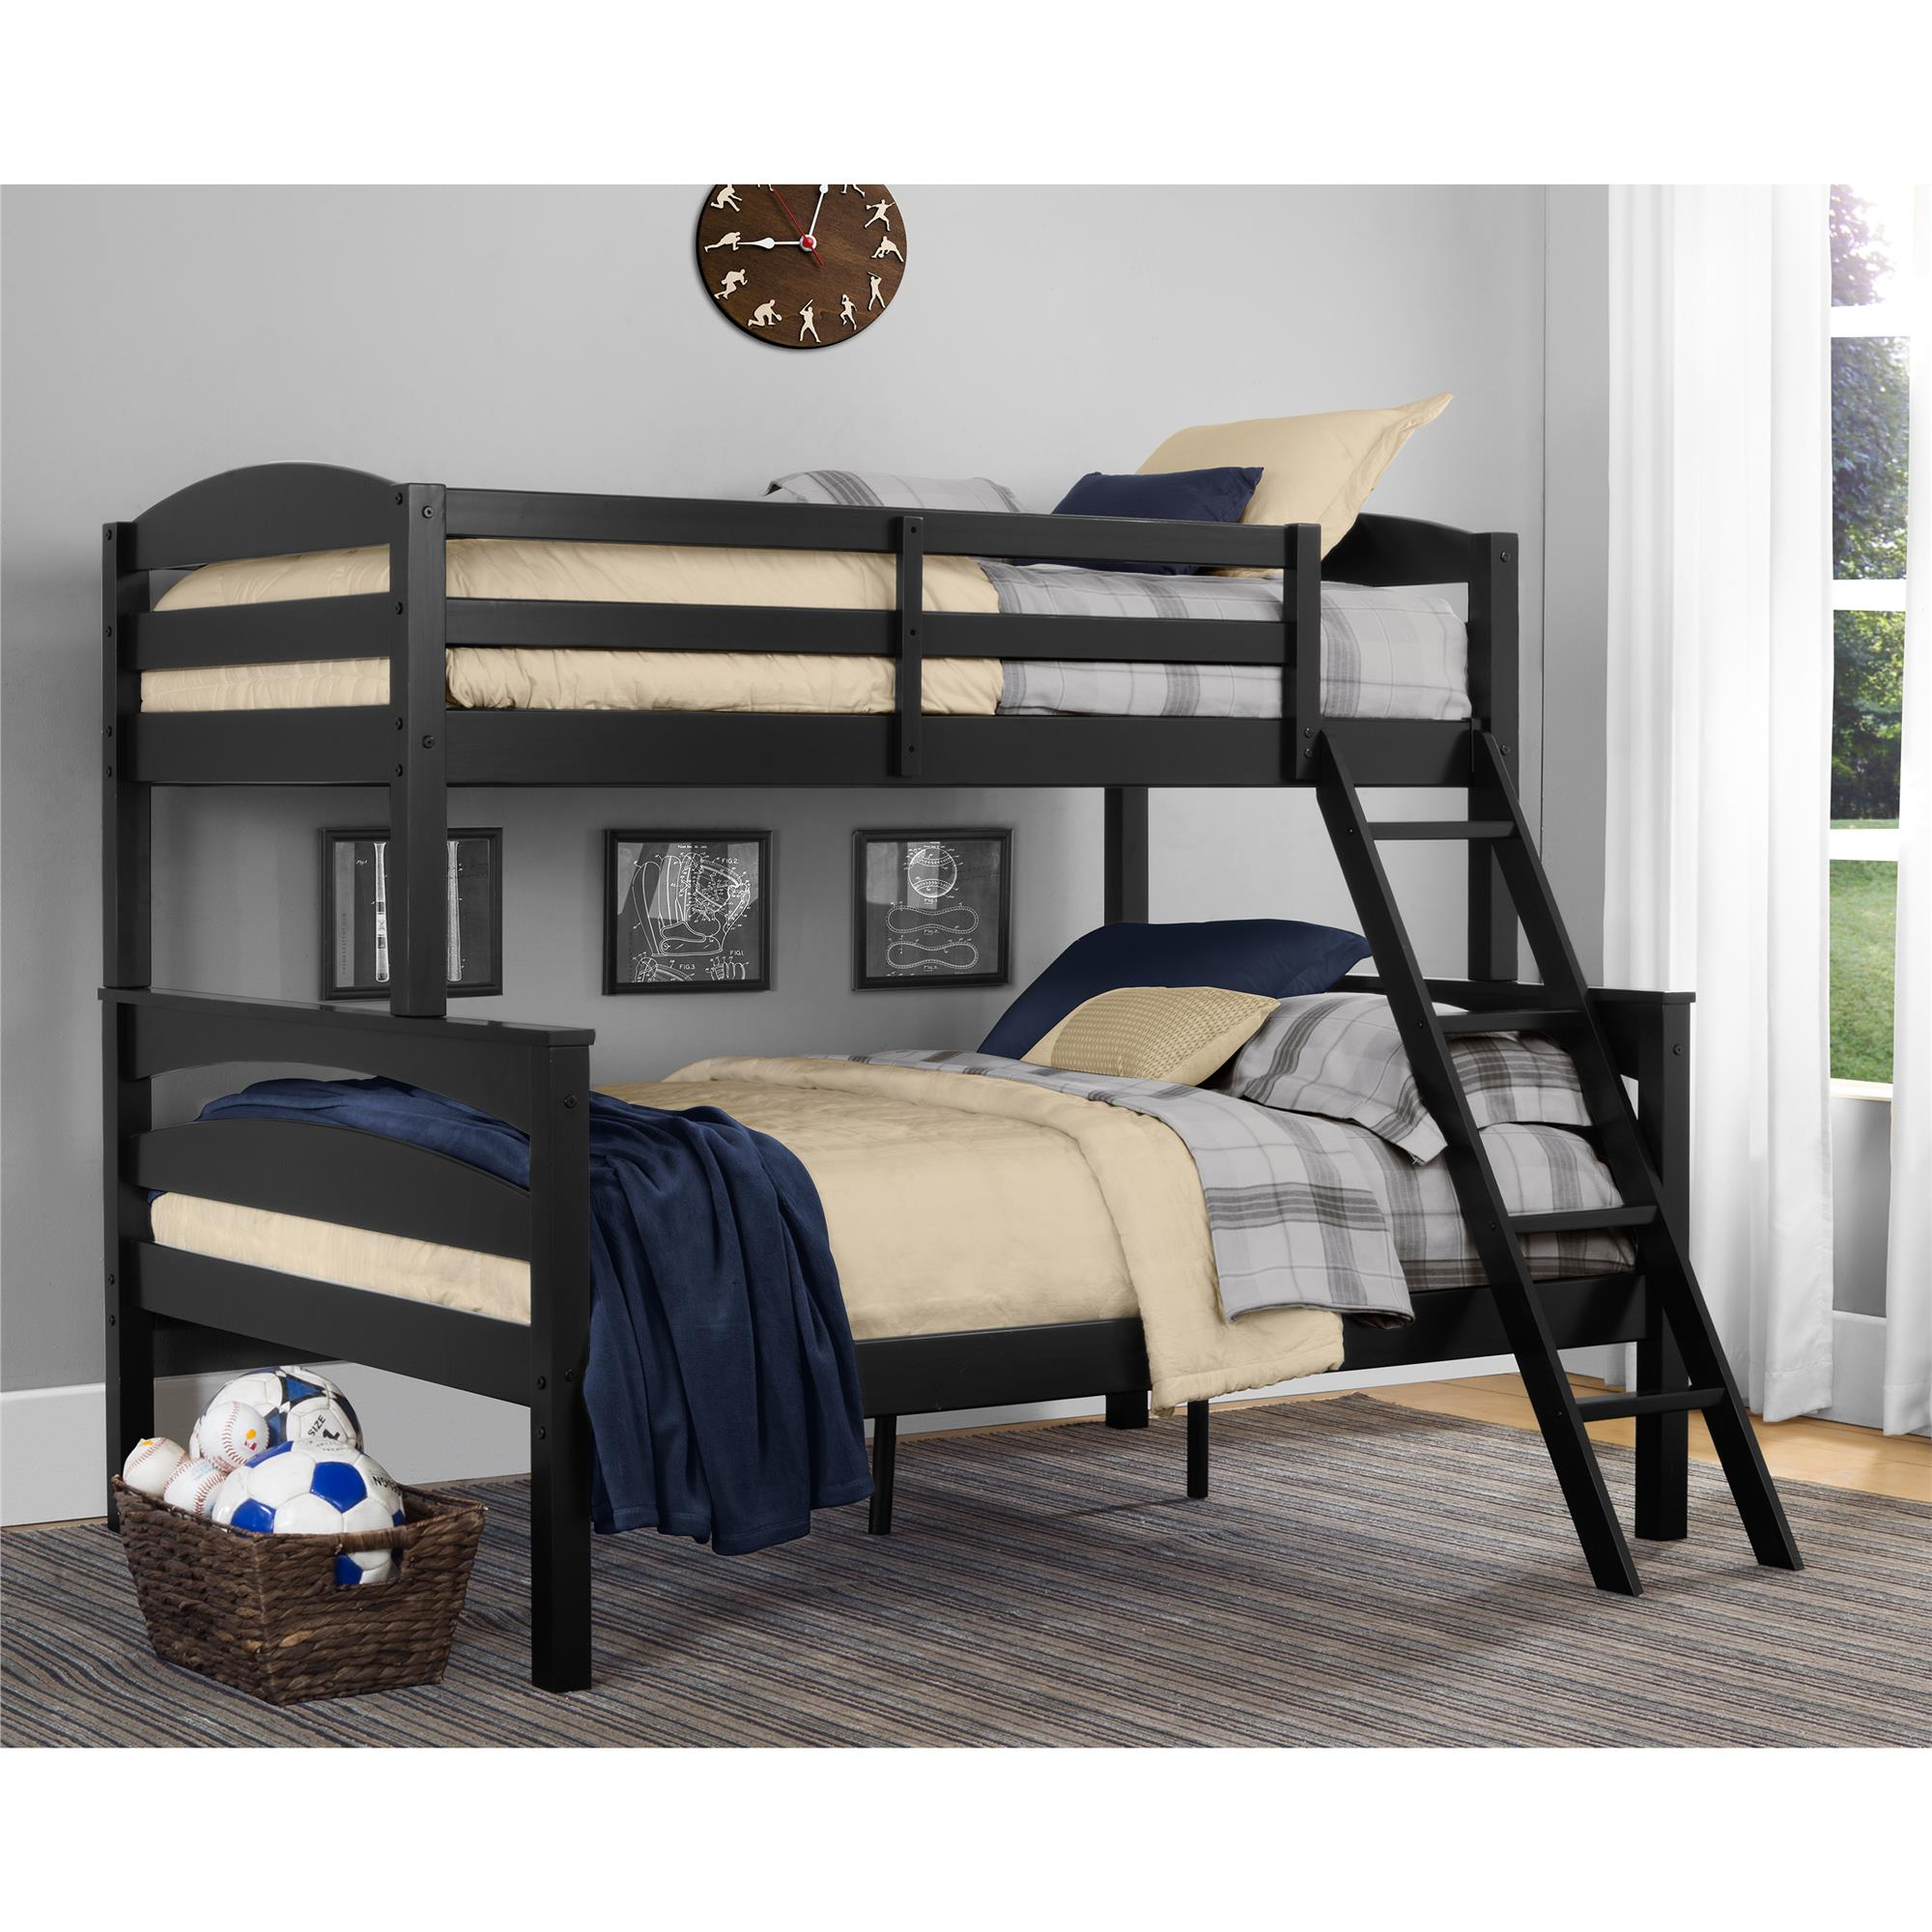 Dorel Home Furnishings Brady Black Twin Over Full Bunk Bed Home